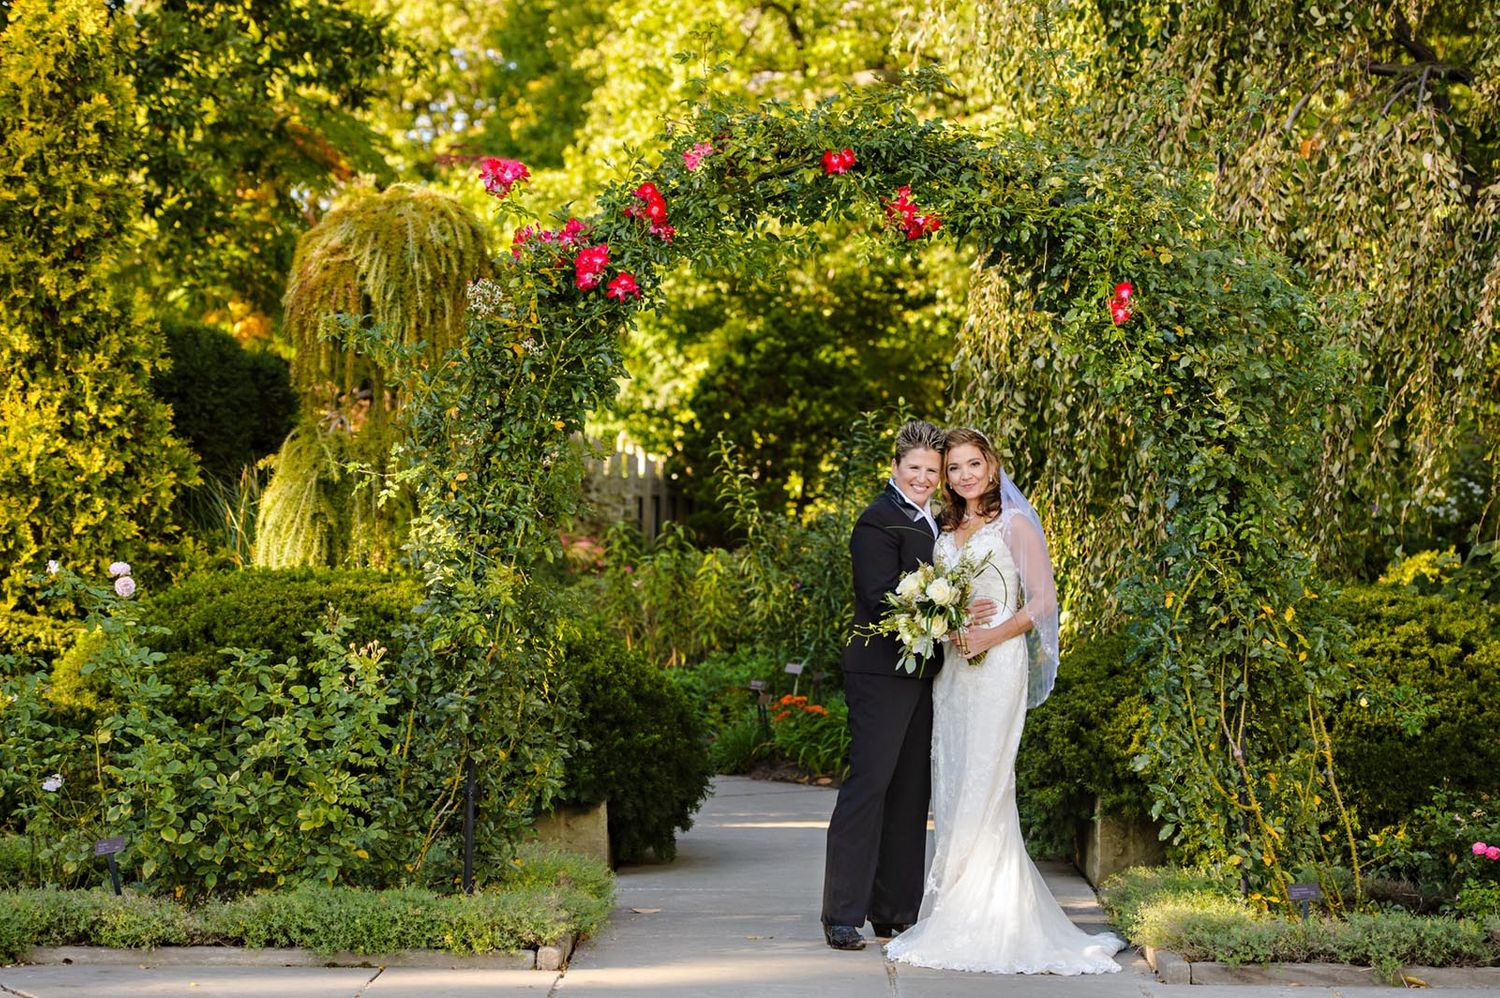 Lesbian October wedding at Cleveland Botanical Gardens